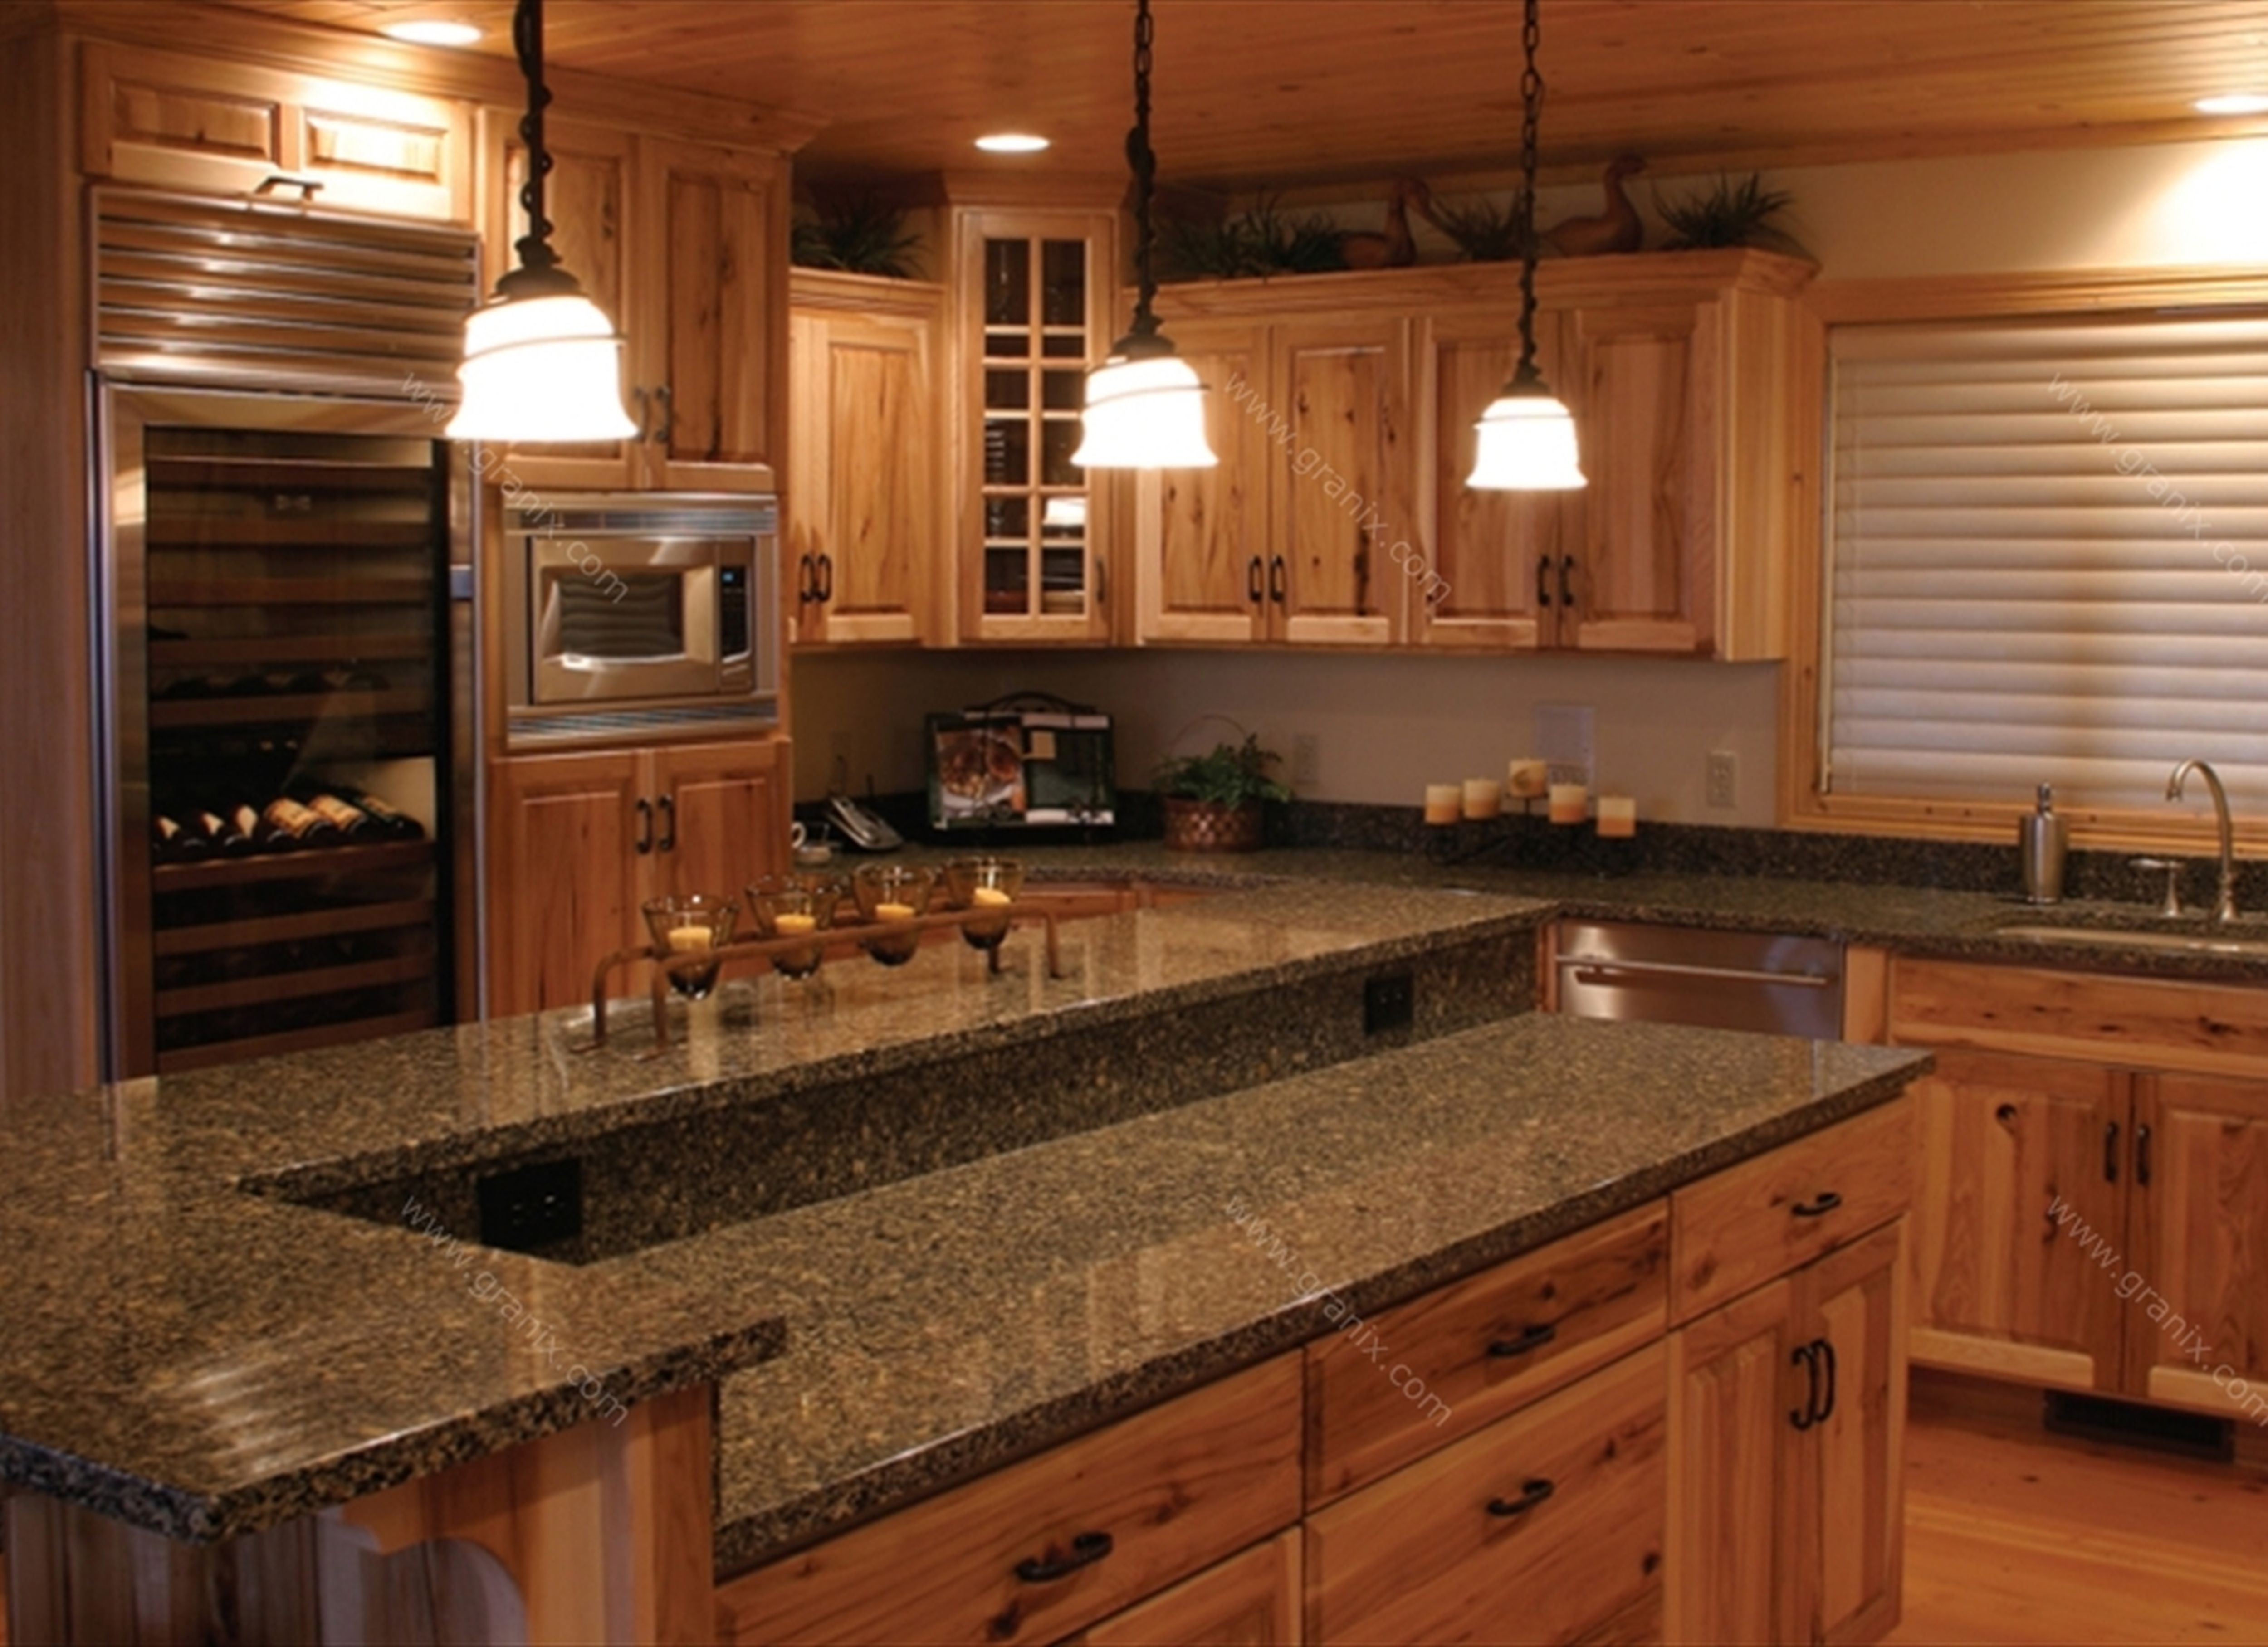 lowes kitchens kitchen cabinet pull outs cozy quartz countertops for your design ideas traditional with and oak cabinets under